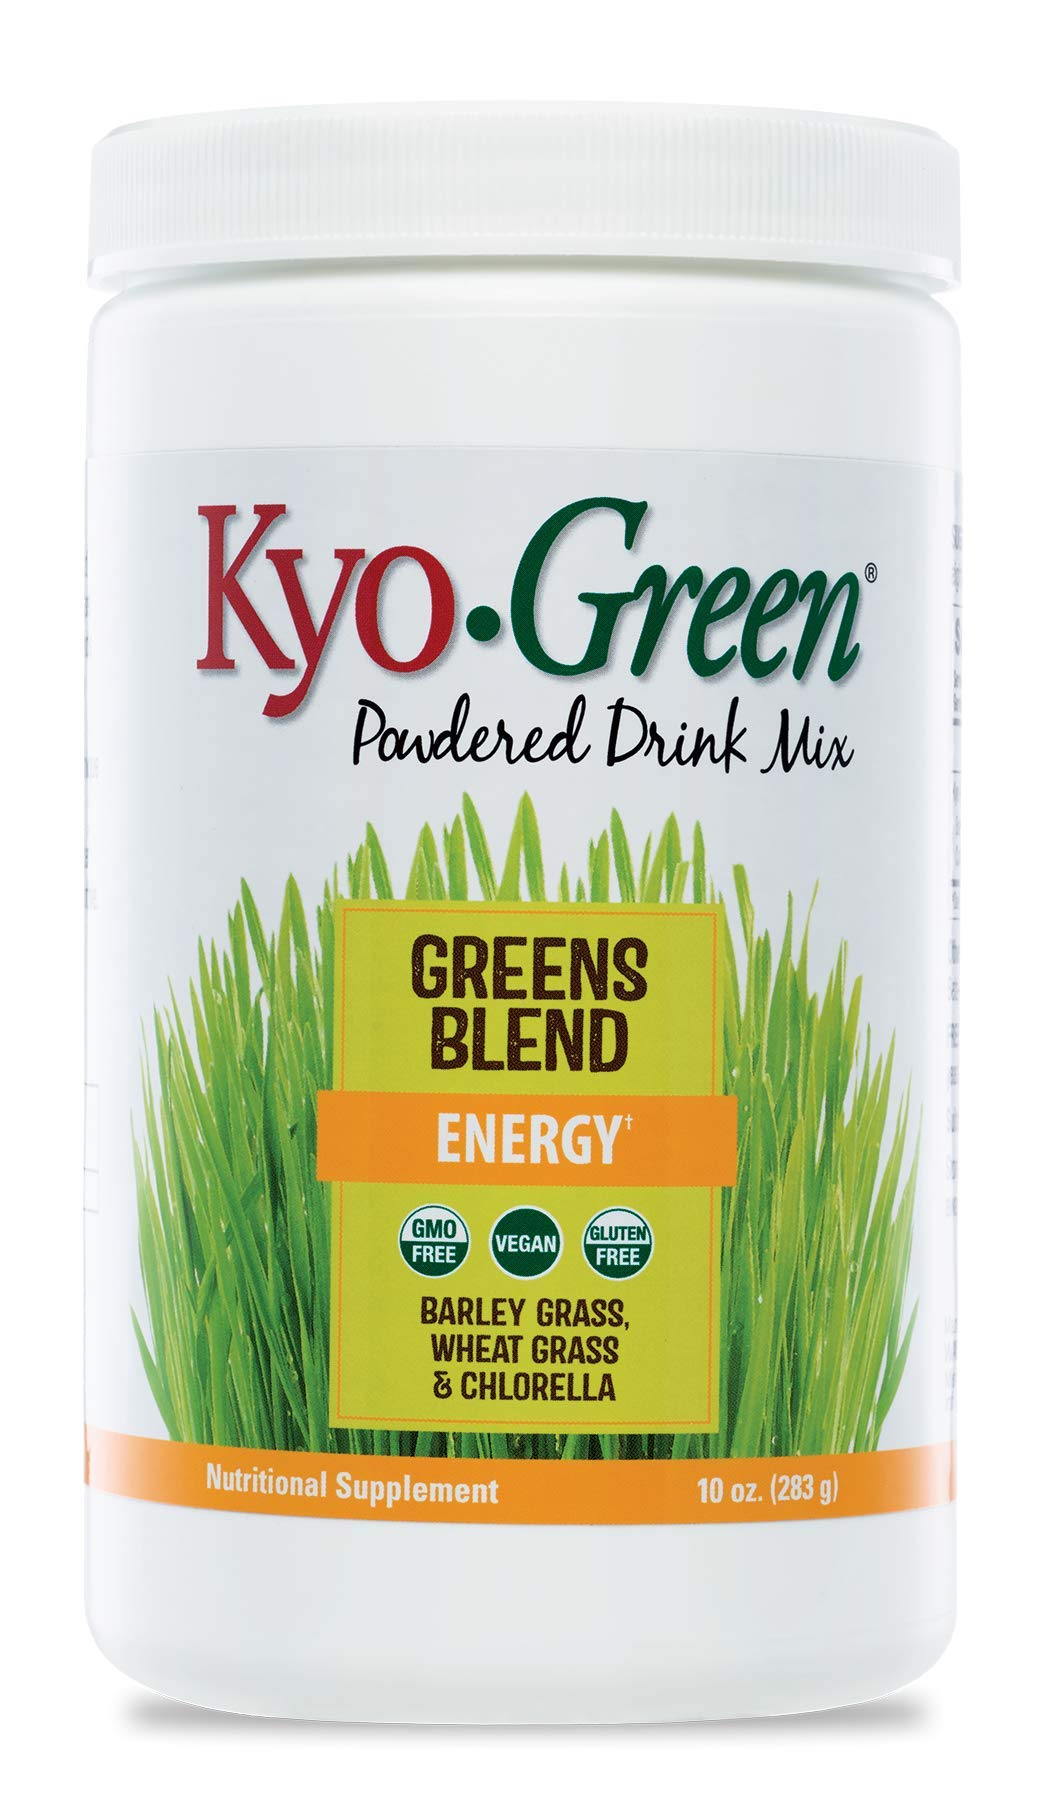 Kyo-Green Green Blends Energy Powered Drink Mix, 10 Ounce Bottle by Kyolic